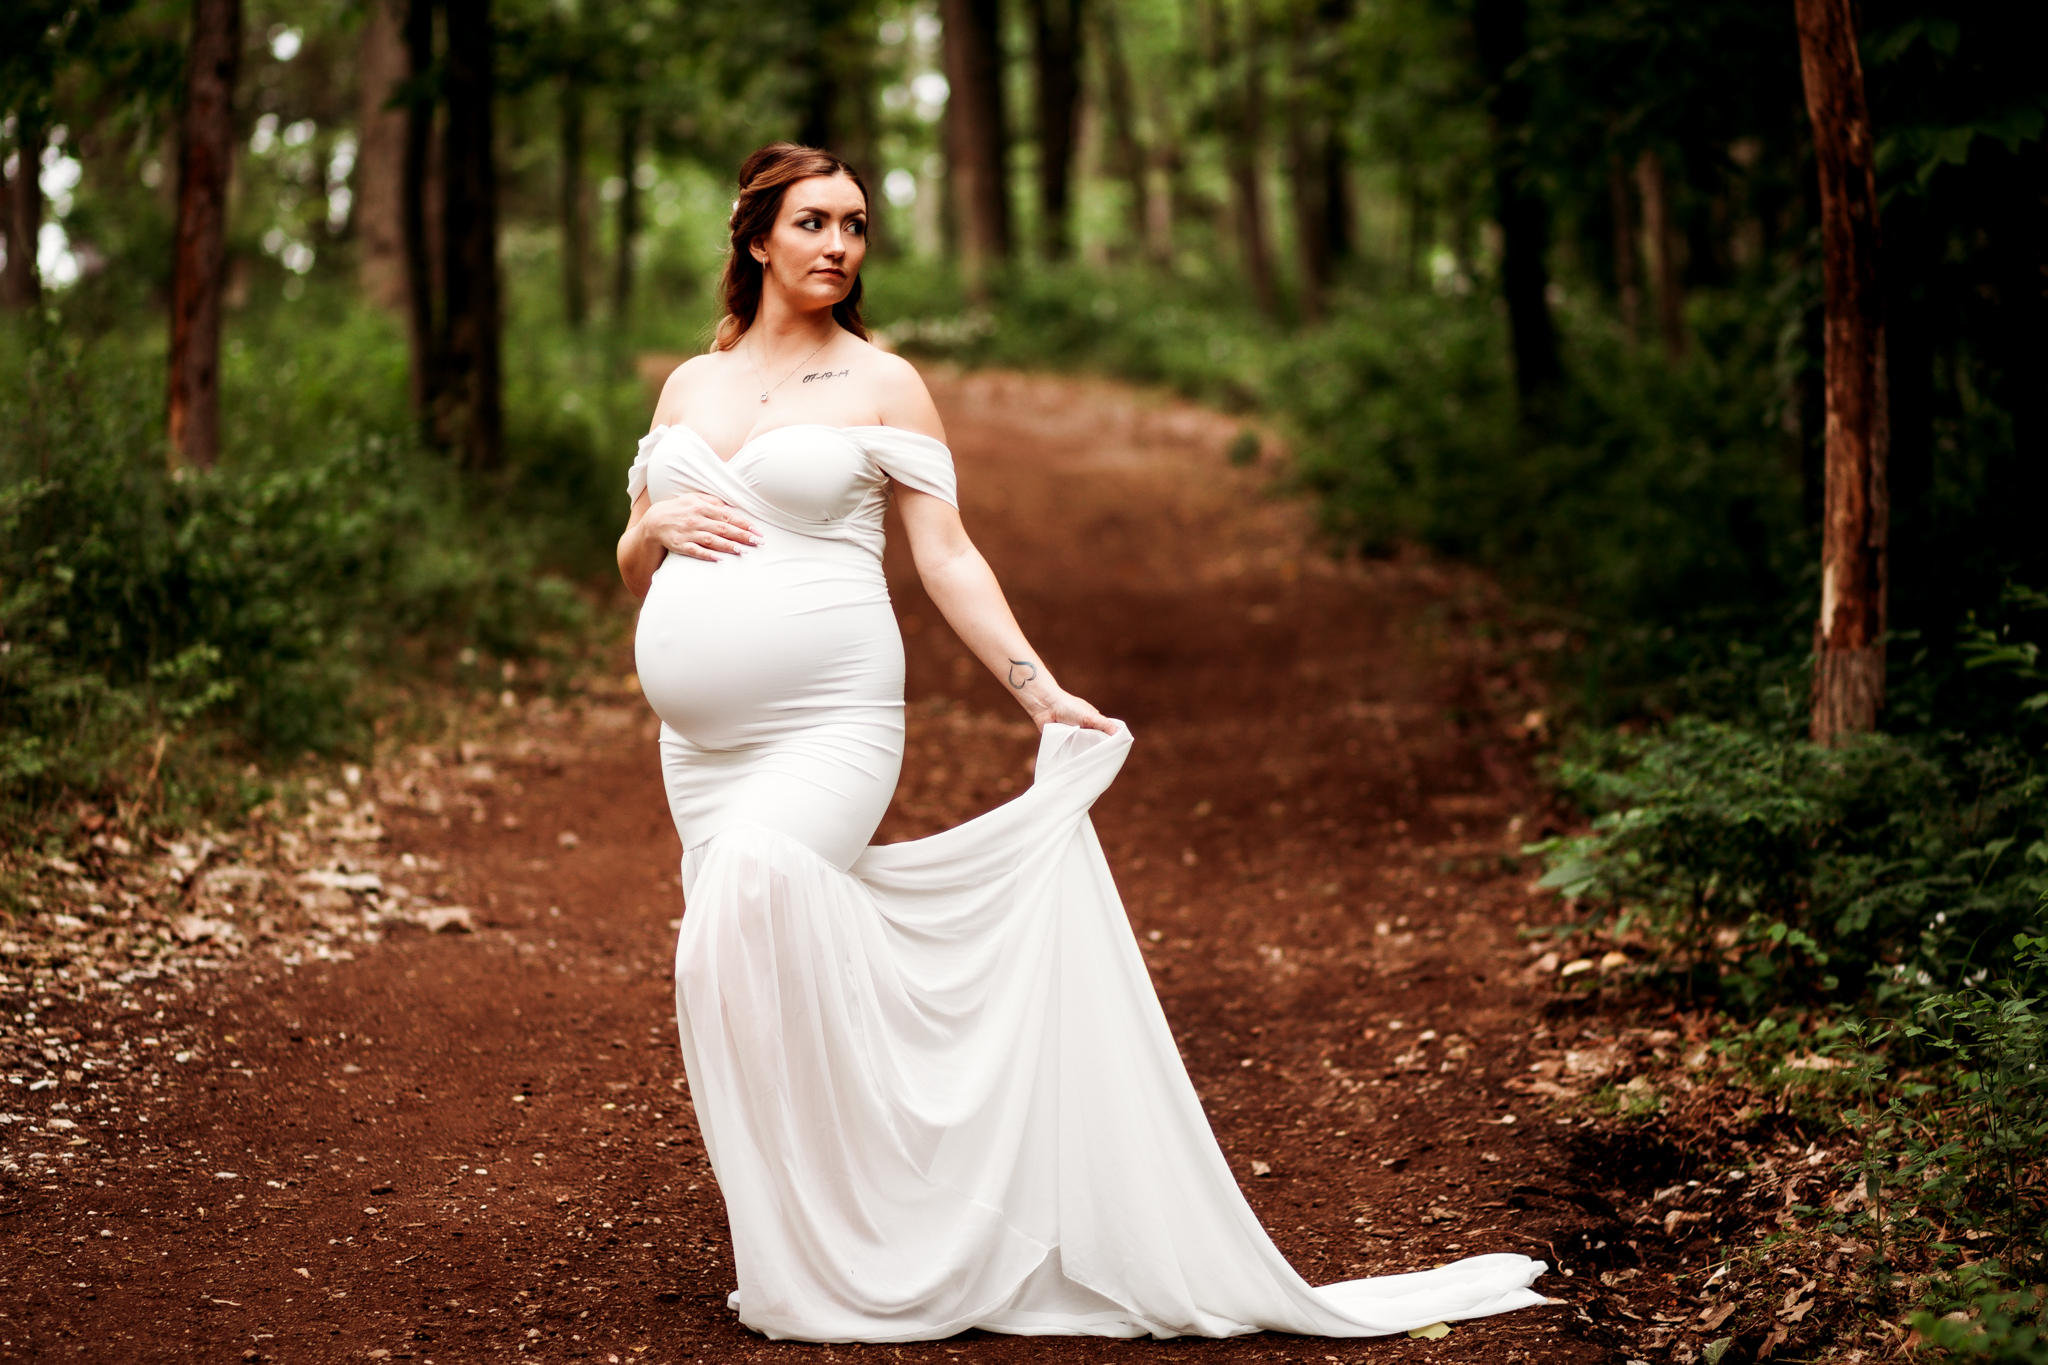 pregnant woman in white gown in woods and holding train of gown